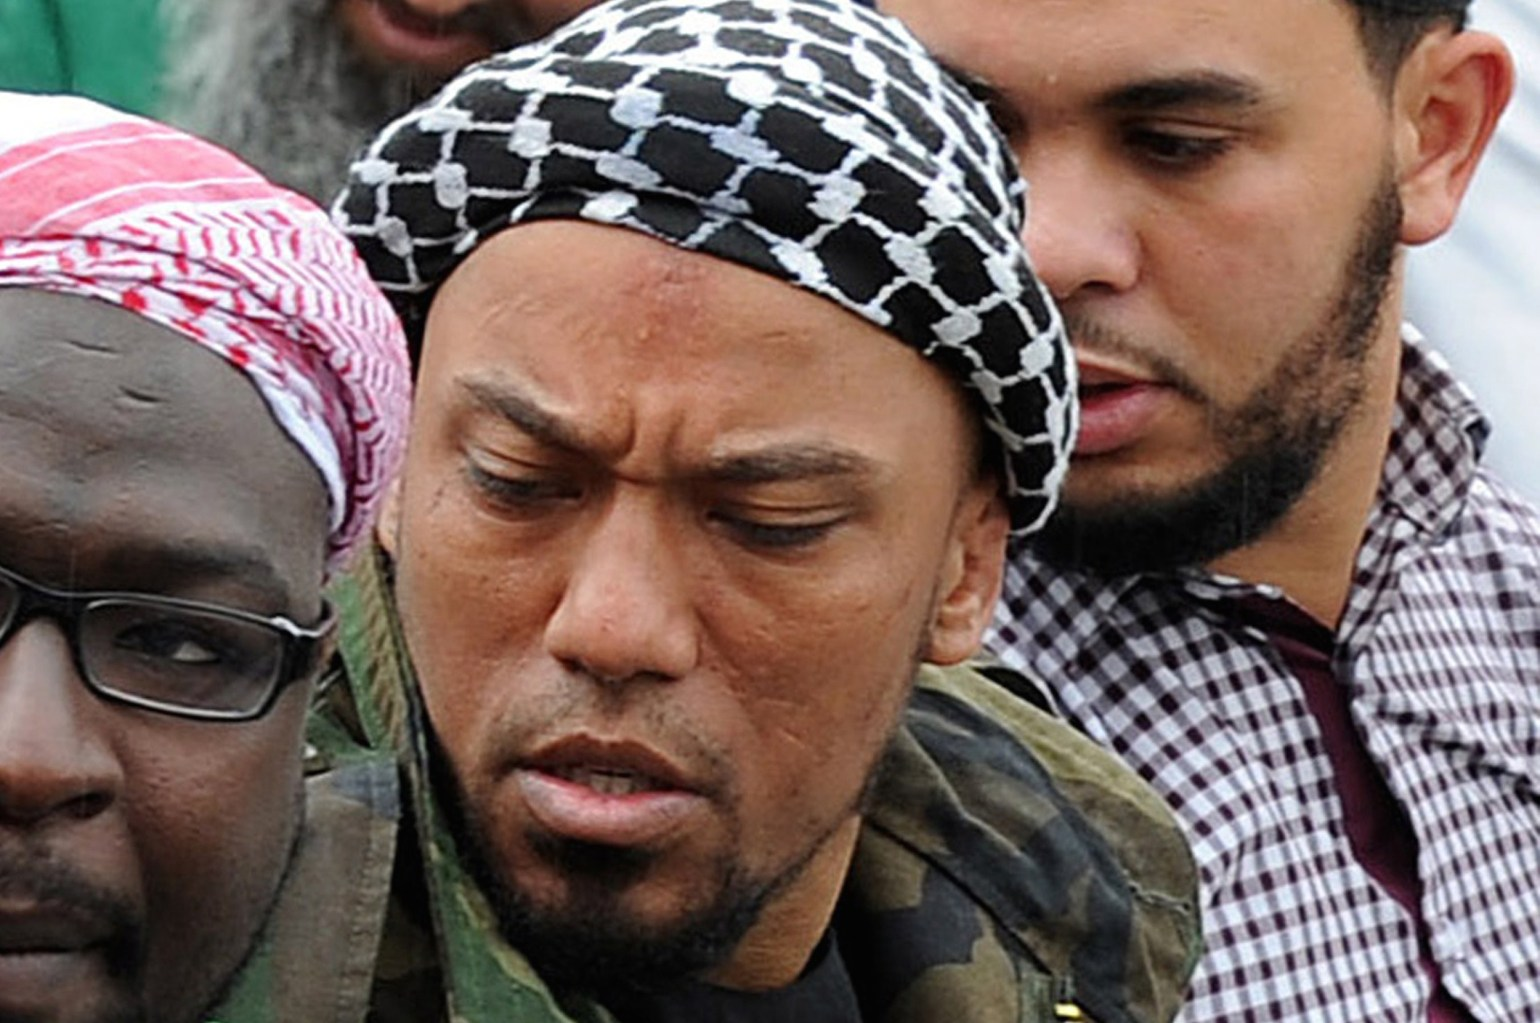 Picture taken on May 5, 2012 shows former German rapper Denis Cuspert (C) among salafi in Bonn, Germany. Denis Mamadou Cuspert, who rapped under the name Deso Dogg but took on the name Abu Talha al-Almani in Syria, was initially reported to have been killed in a suicide attack Sunday in an eastern province but hours later some retracted the claim, saying he was still alive. AFP PHOTO /DPA/ HENNING KAISER GERMANY OUT (Photo credit should read HENNING KAISER/AFP/Getty Images)